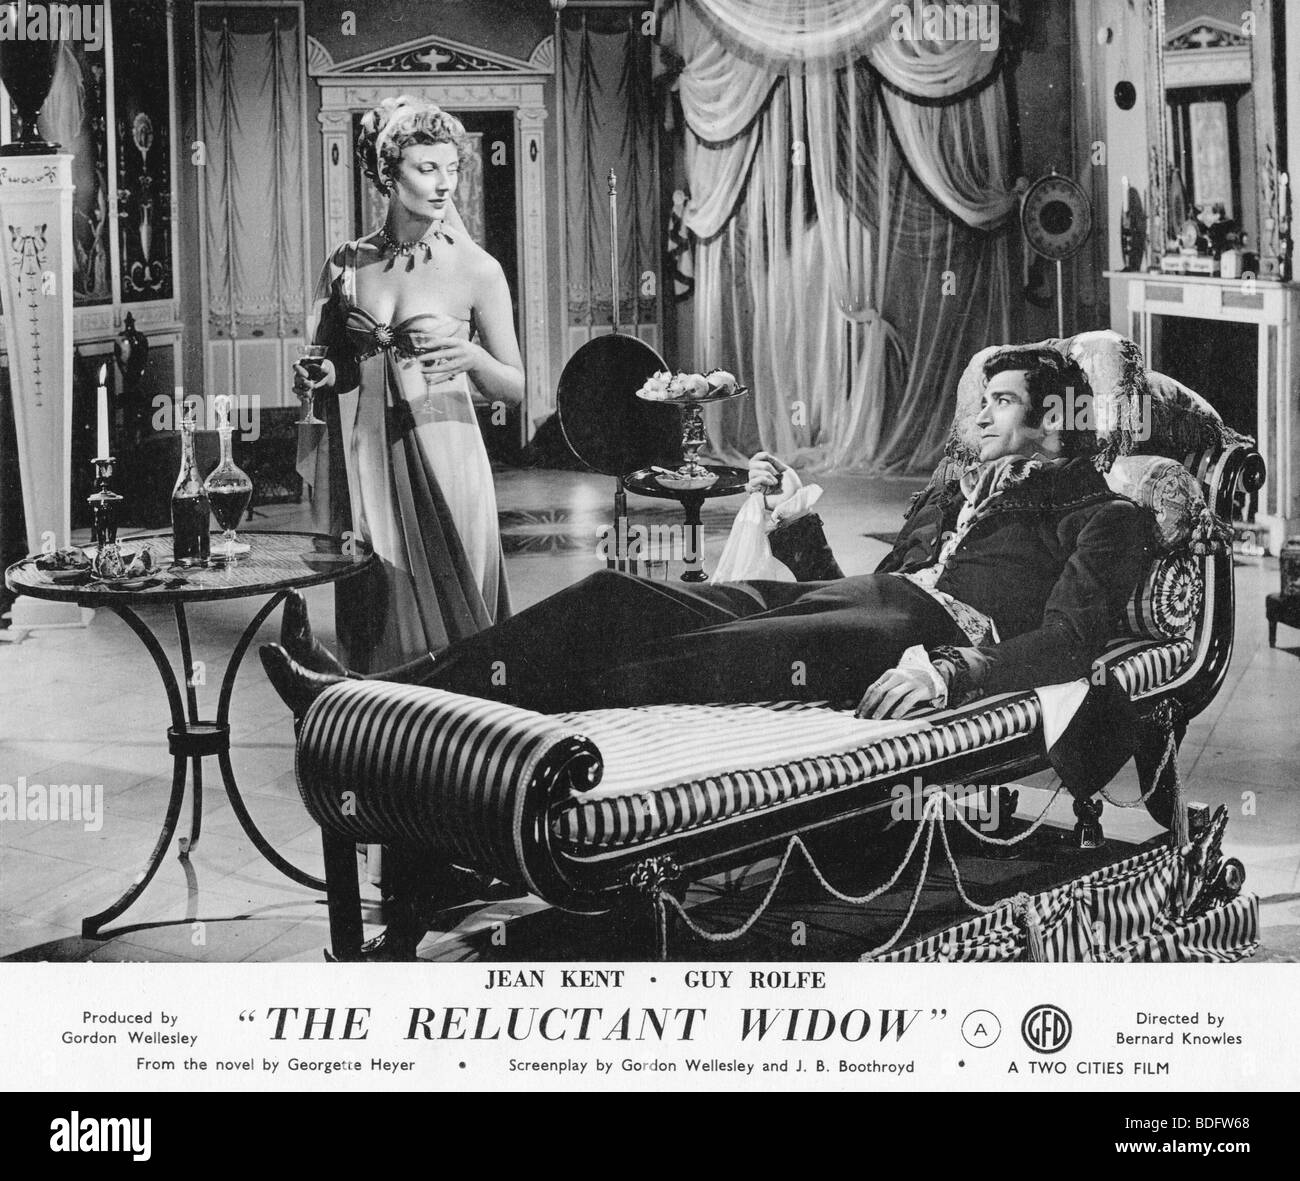 THE RELUCTANT WIDOW   1950 Rank film with Jean Kent and Guy Rolfe - Stock Image